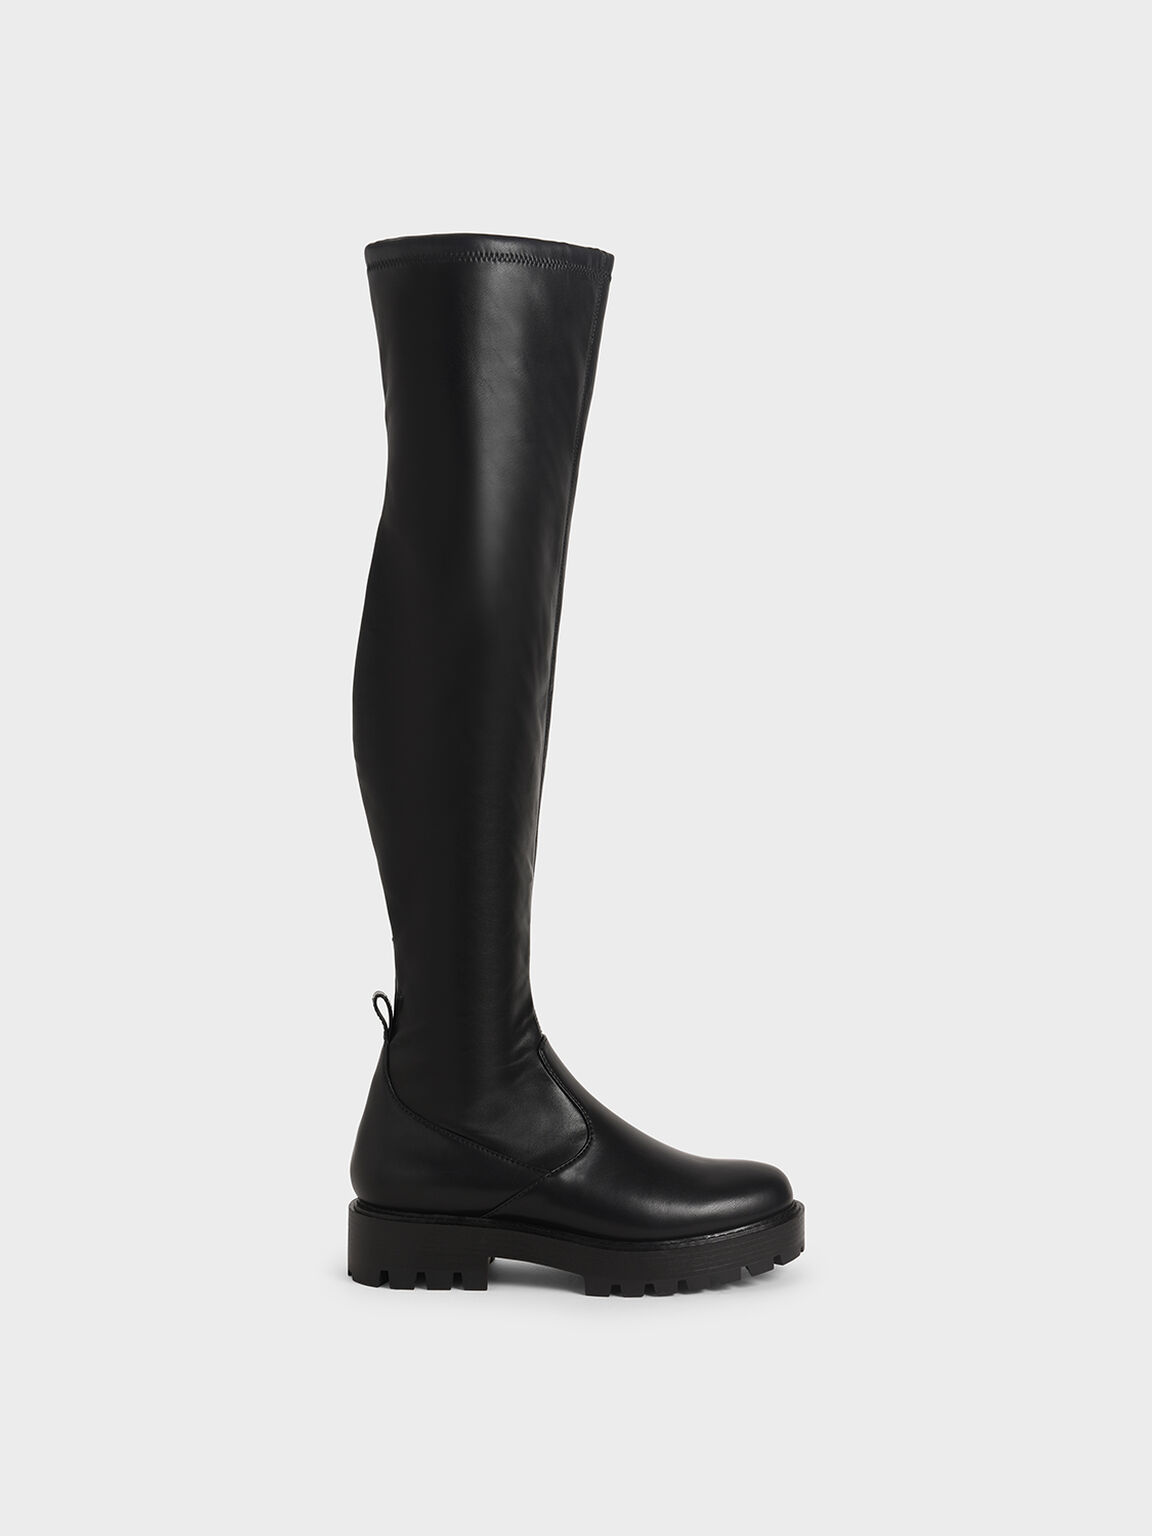 Thigh High Platform Boots, Black, hi-res